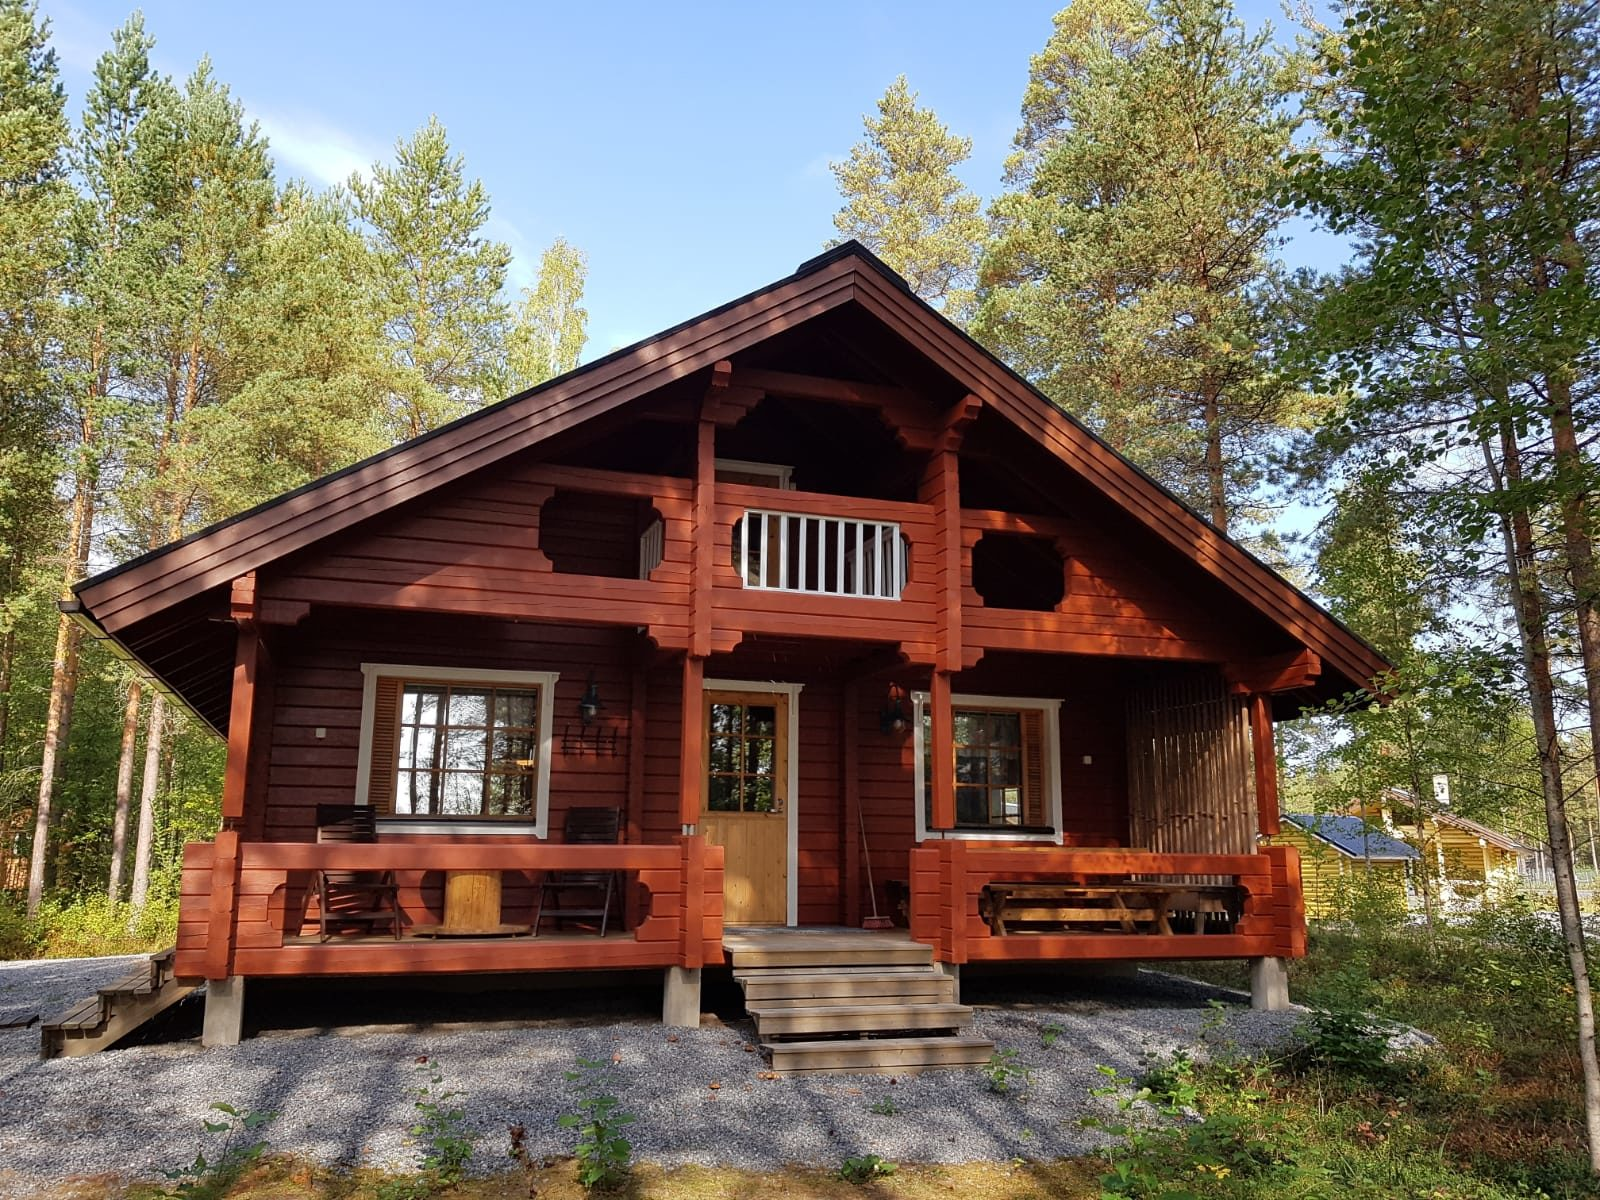 4. Kuha Cottage (at the Kalajärvi recreation area)